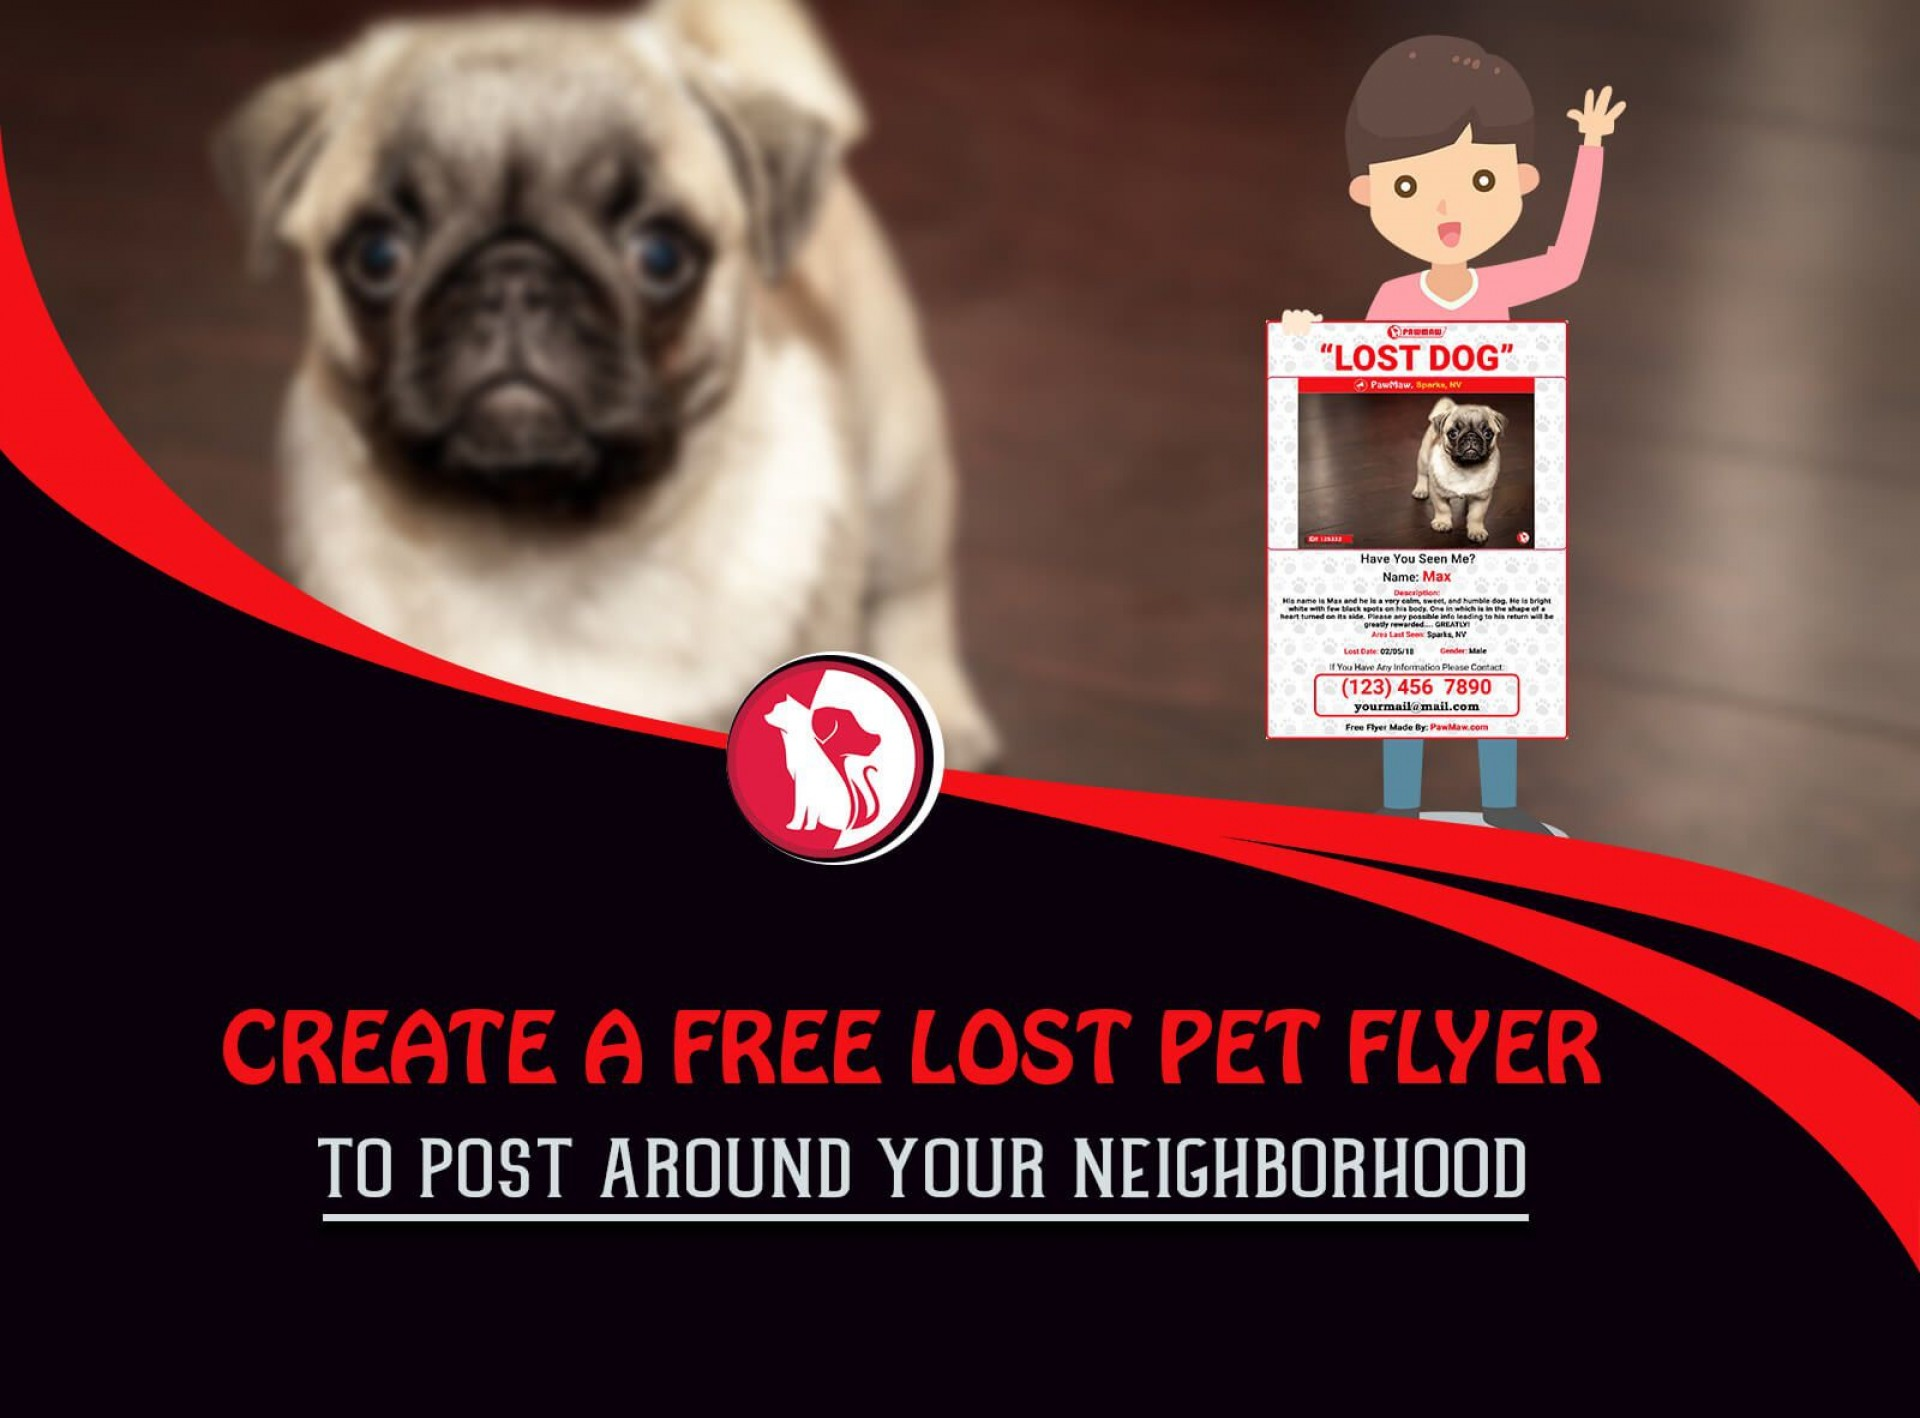 000 Imposing Missing Dog Flyer Template Idea  Lost Poster1920